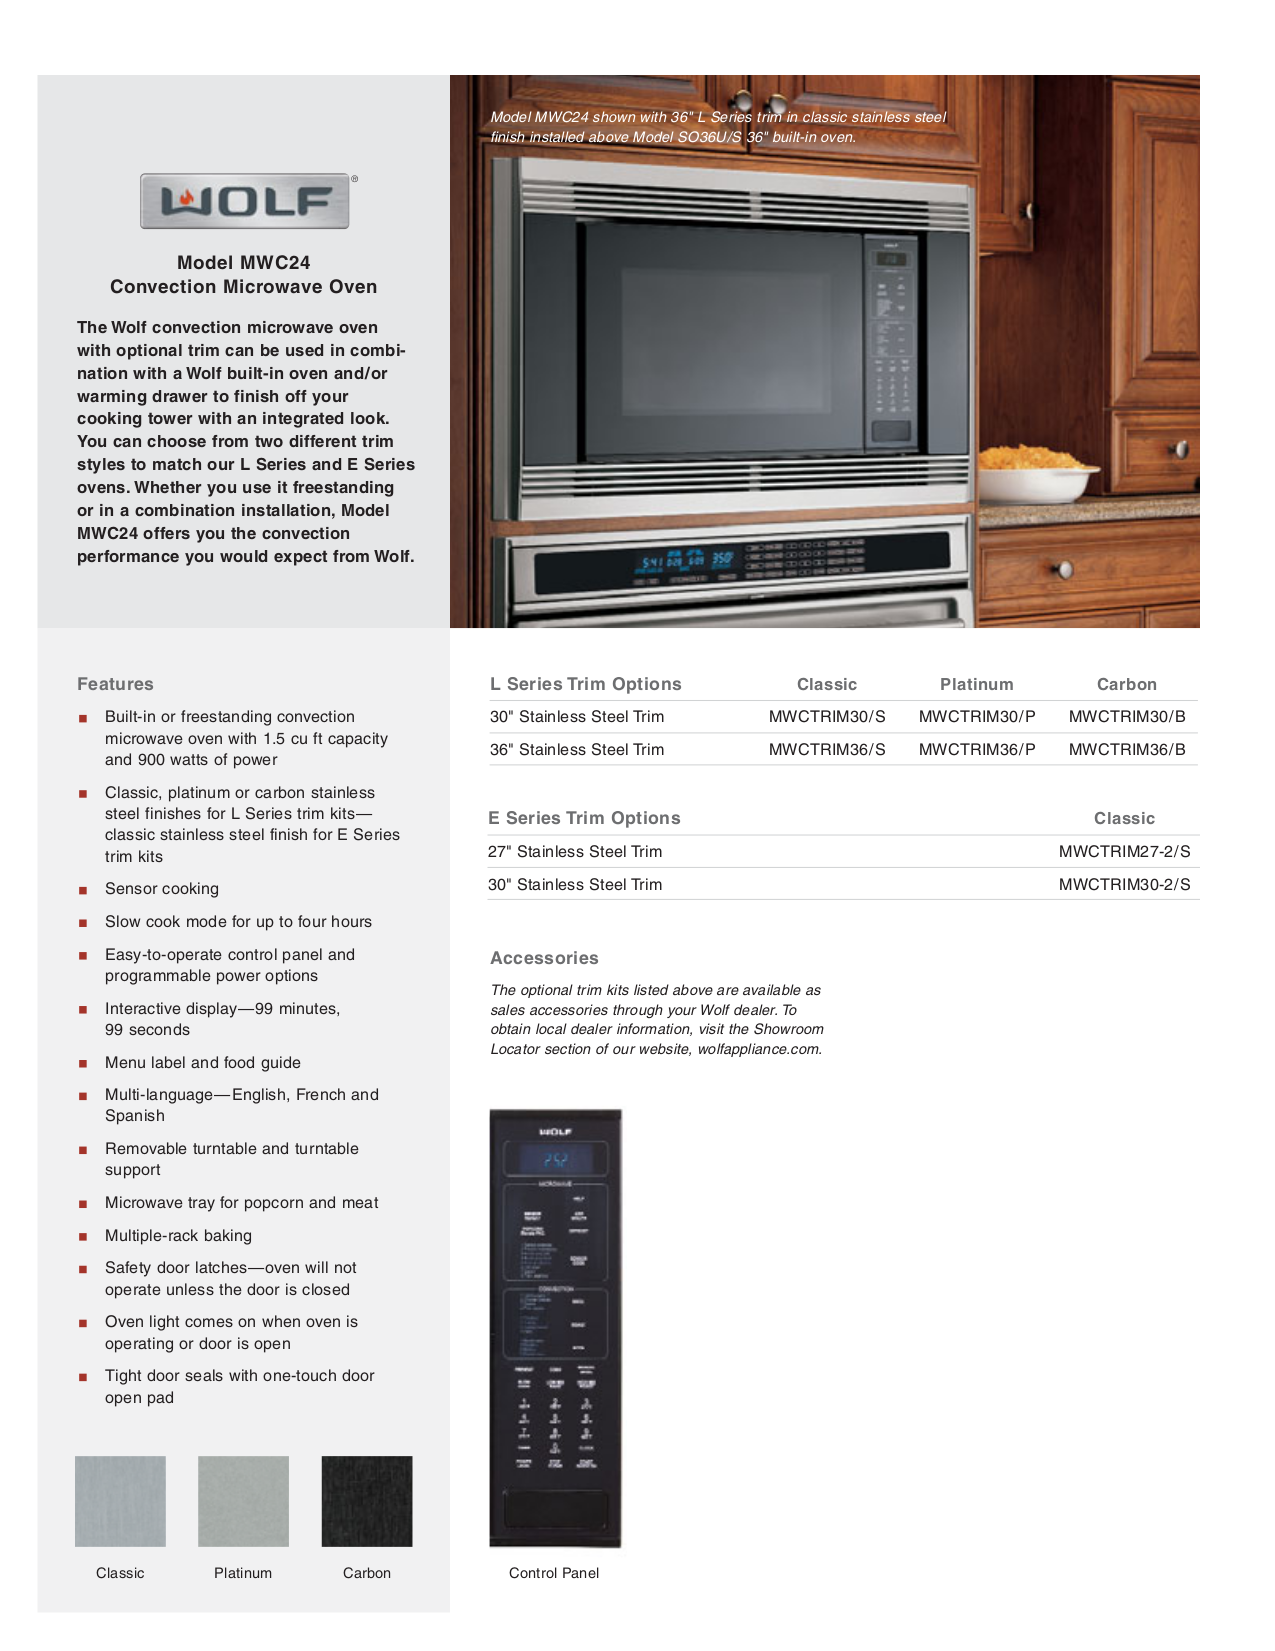 pdf for Wolf Oven MWC24 manual